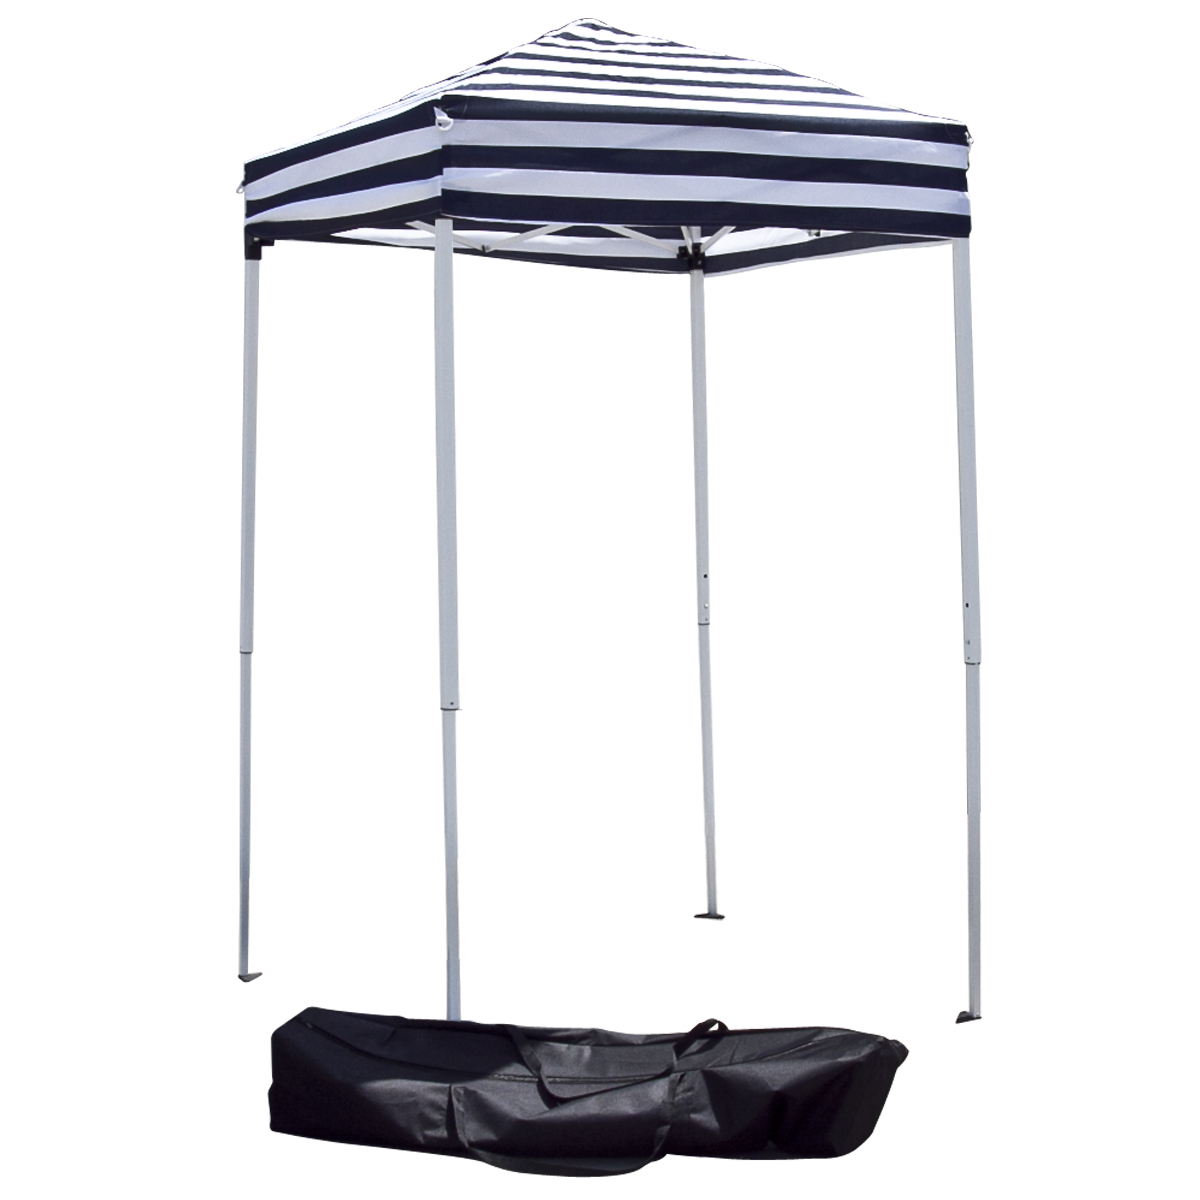 2x portable cabana stripe changing room privacy tent pool for Portable garden room